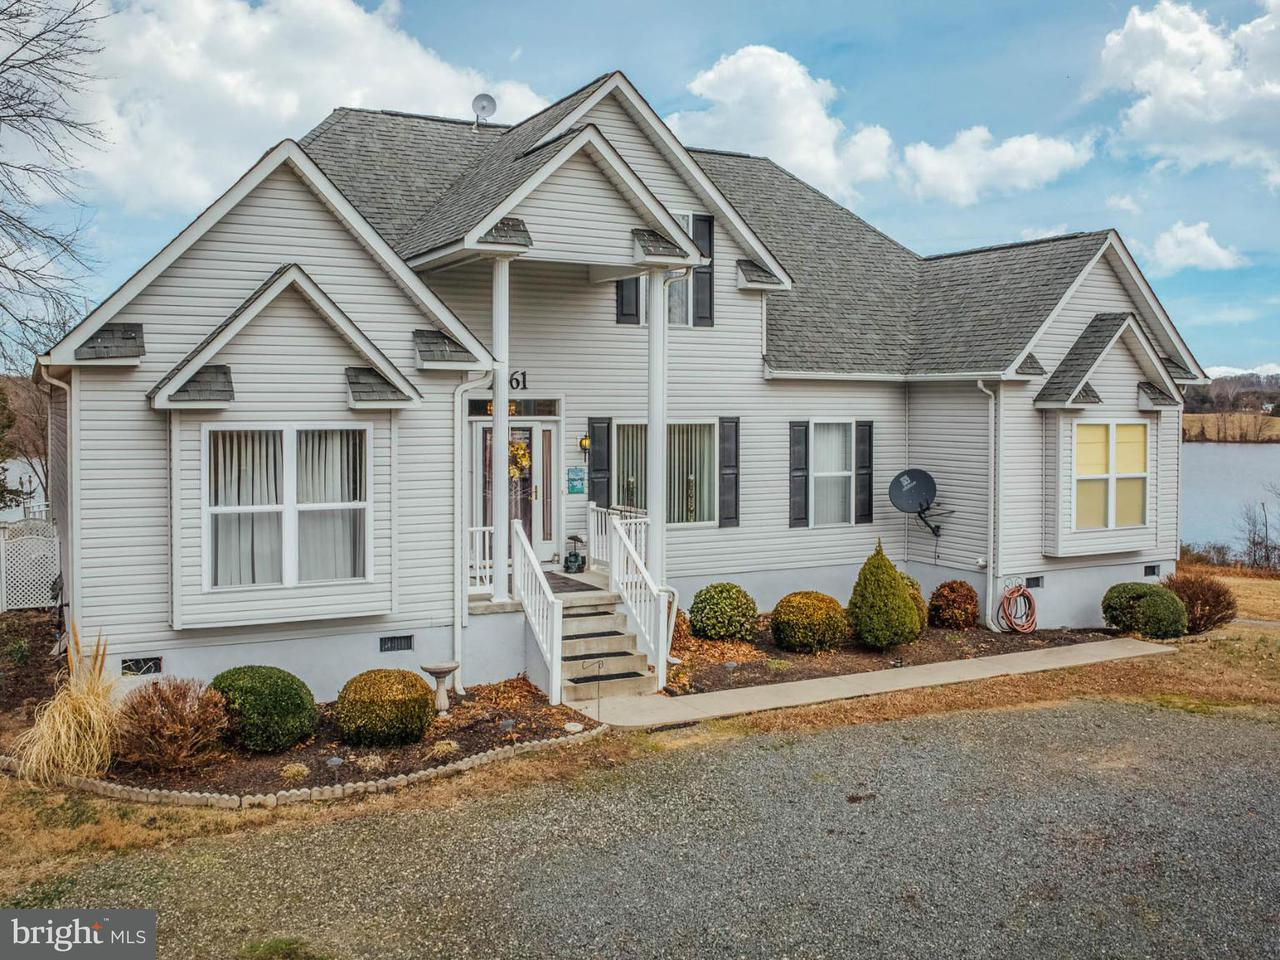 Single Family Home for Sale at 2561 PEACH GROVE Road 2561 PEACH GROVE Road Louisa, Virginia 23093 United States